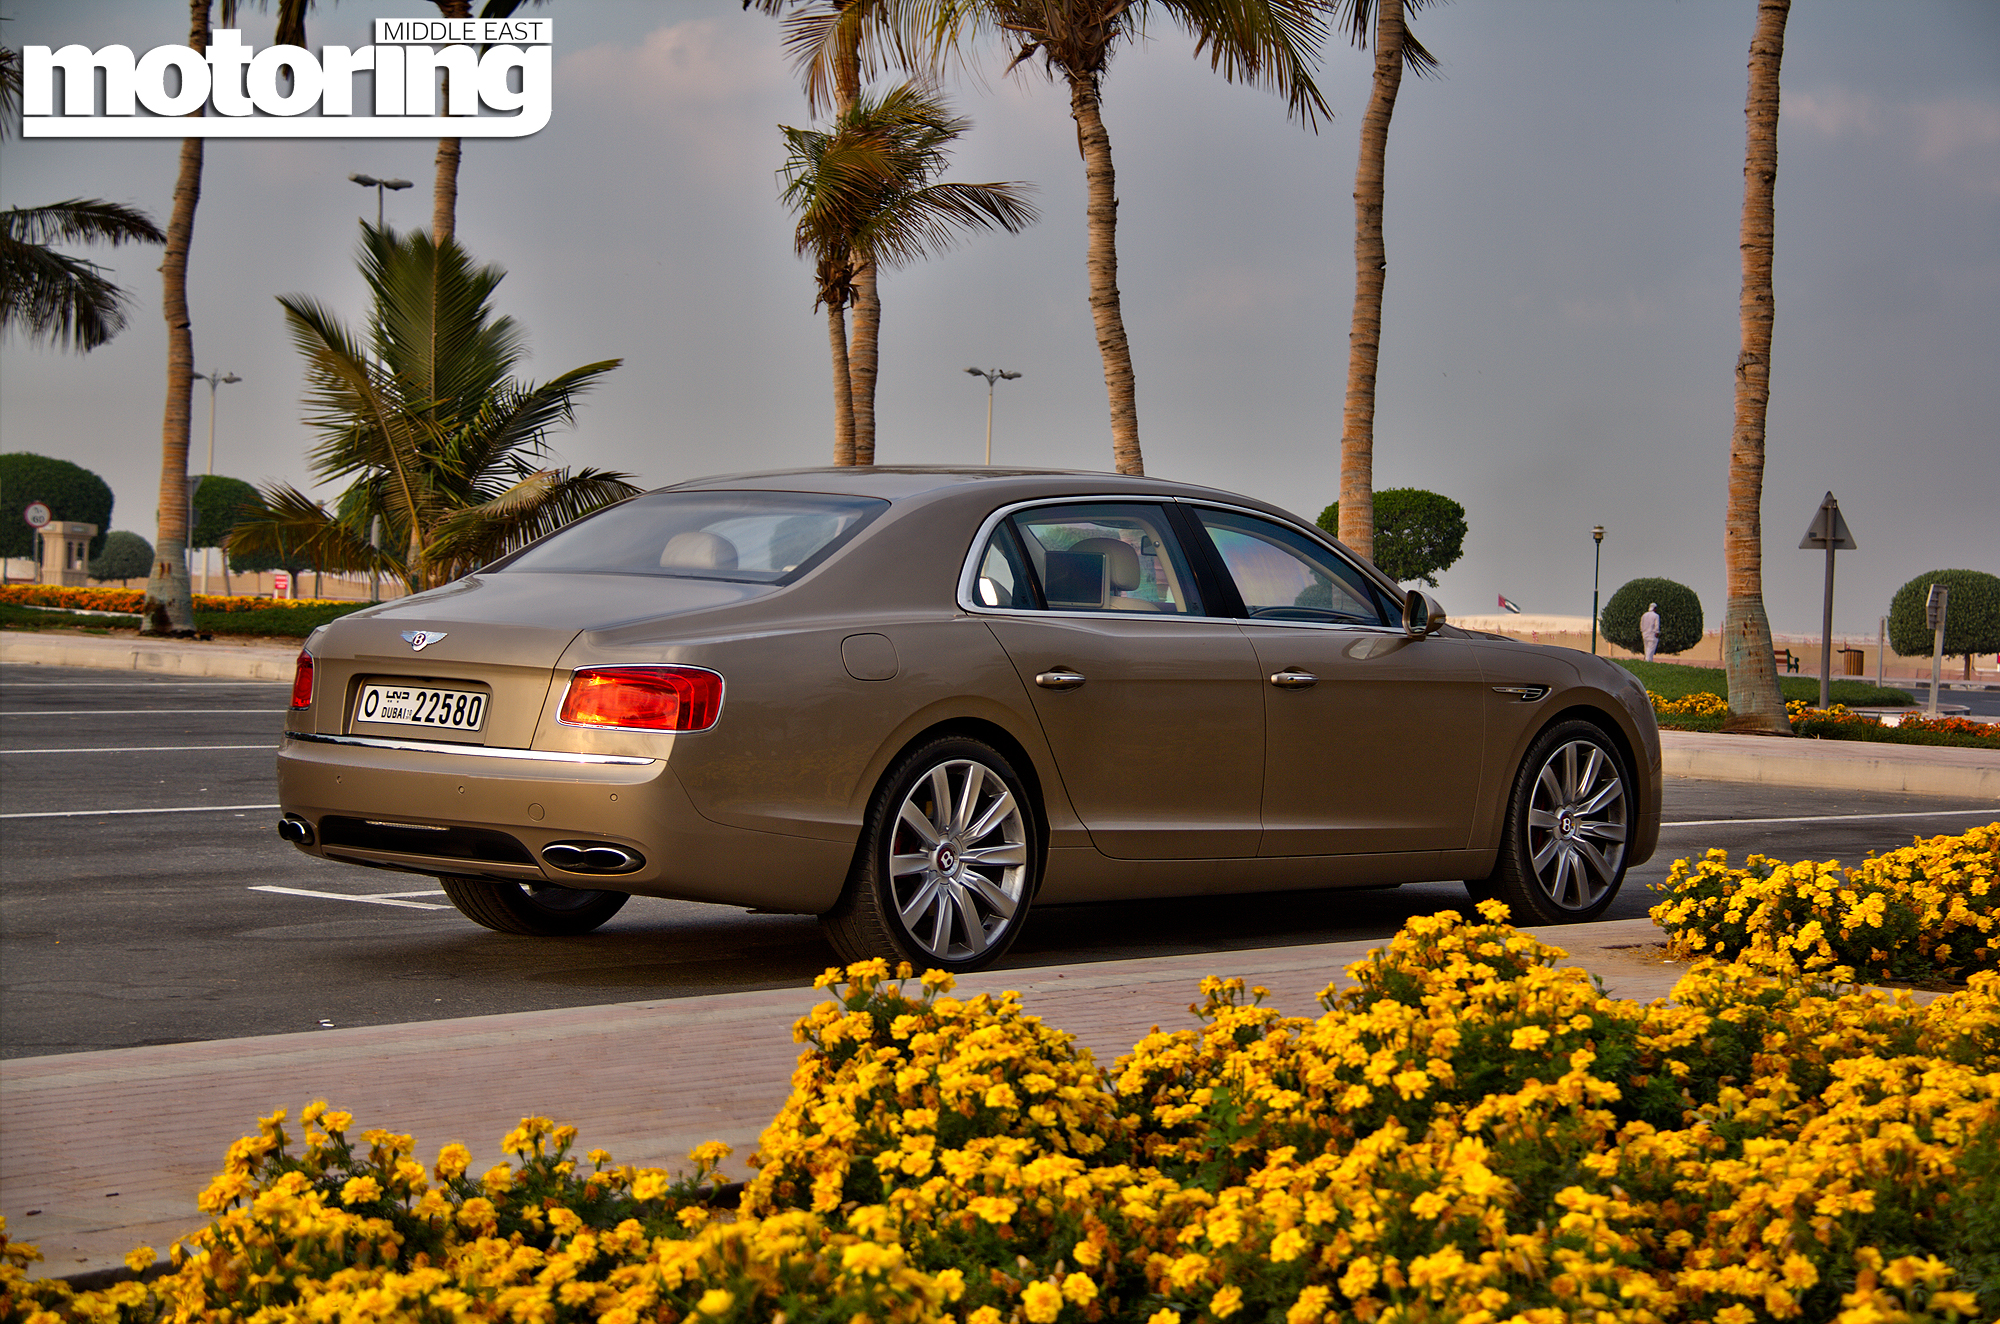 2015 Bentley Flying Spur V8 ReviewMotoring Middle East: Car news ...